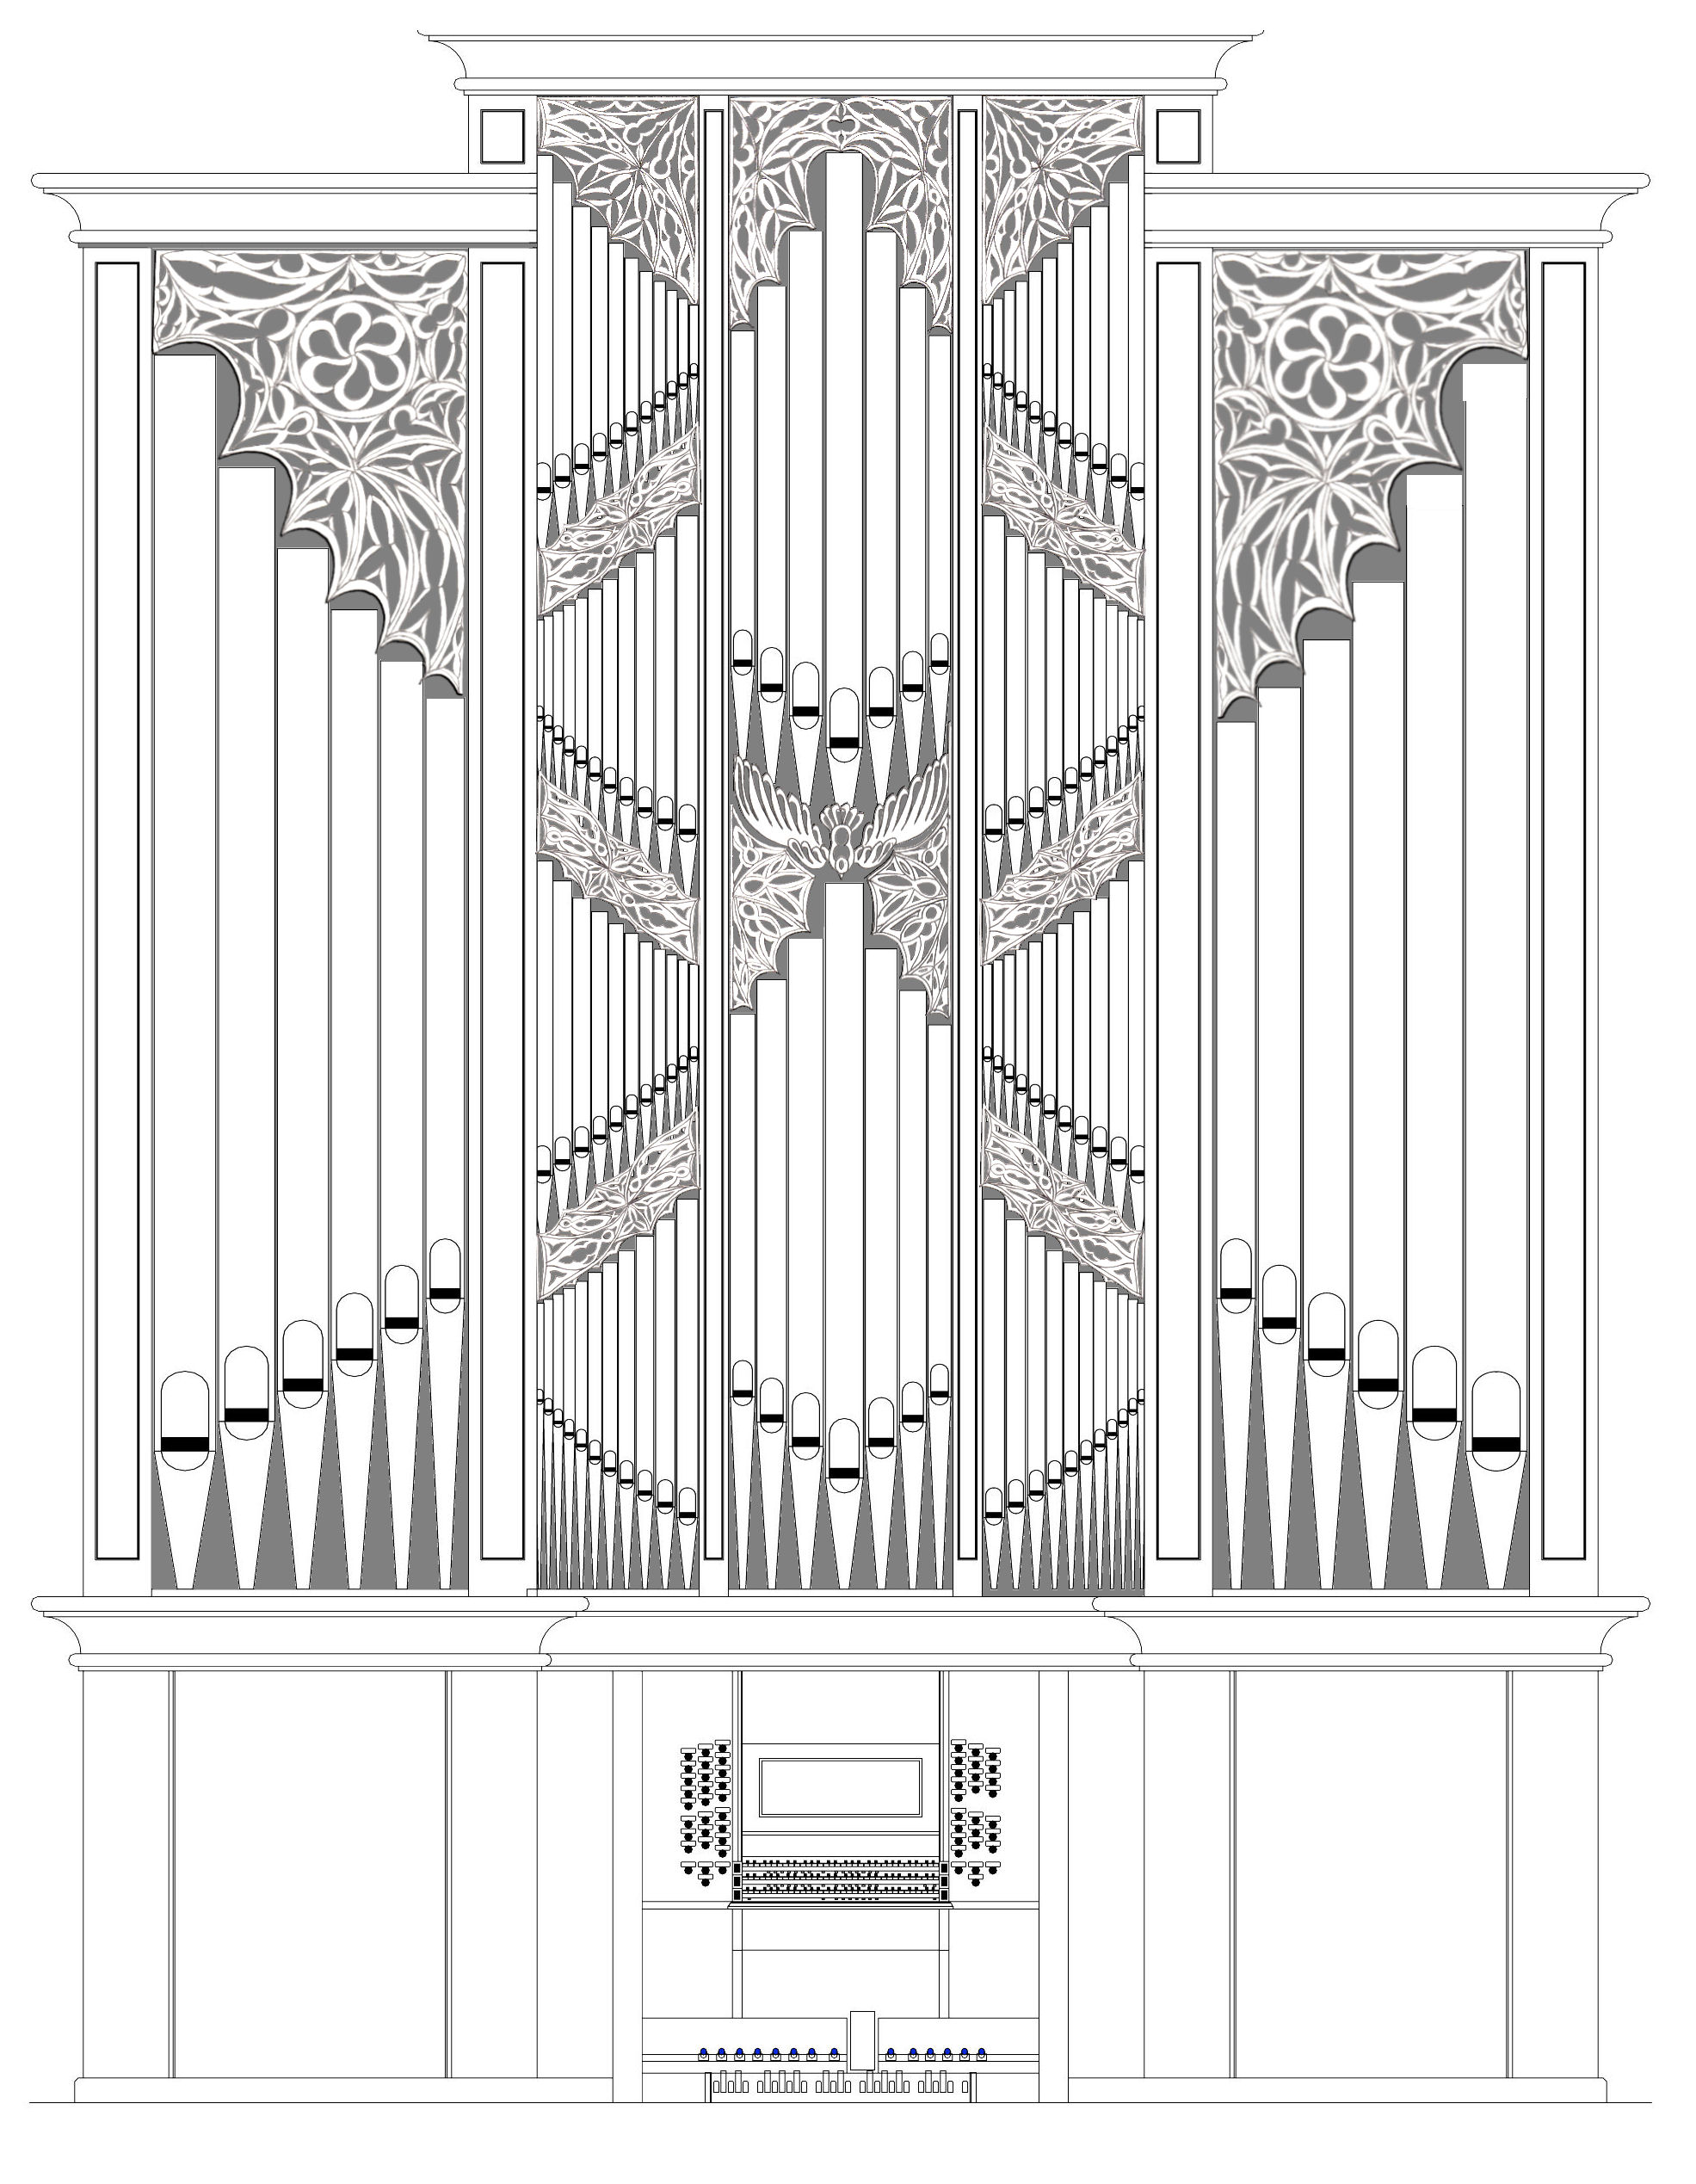 Organ Pipes Drawing Fritts Organ Builders st